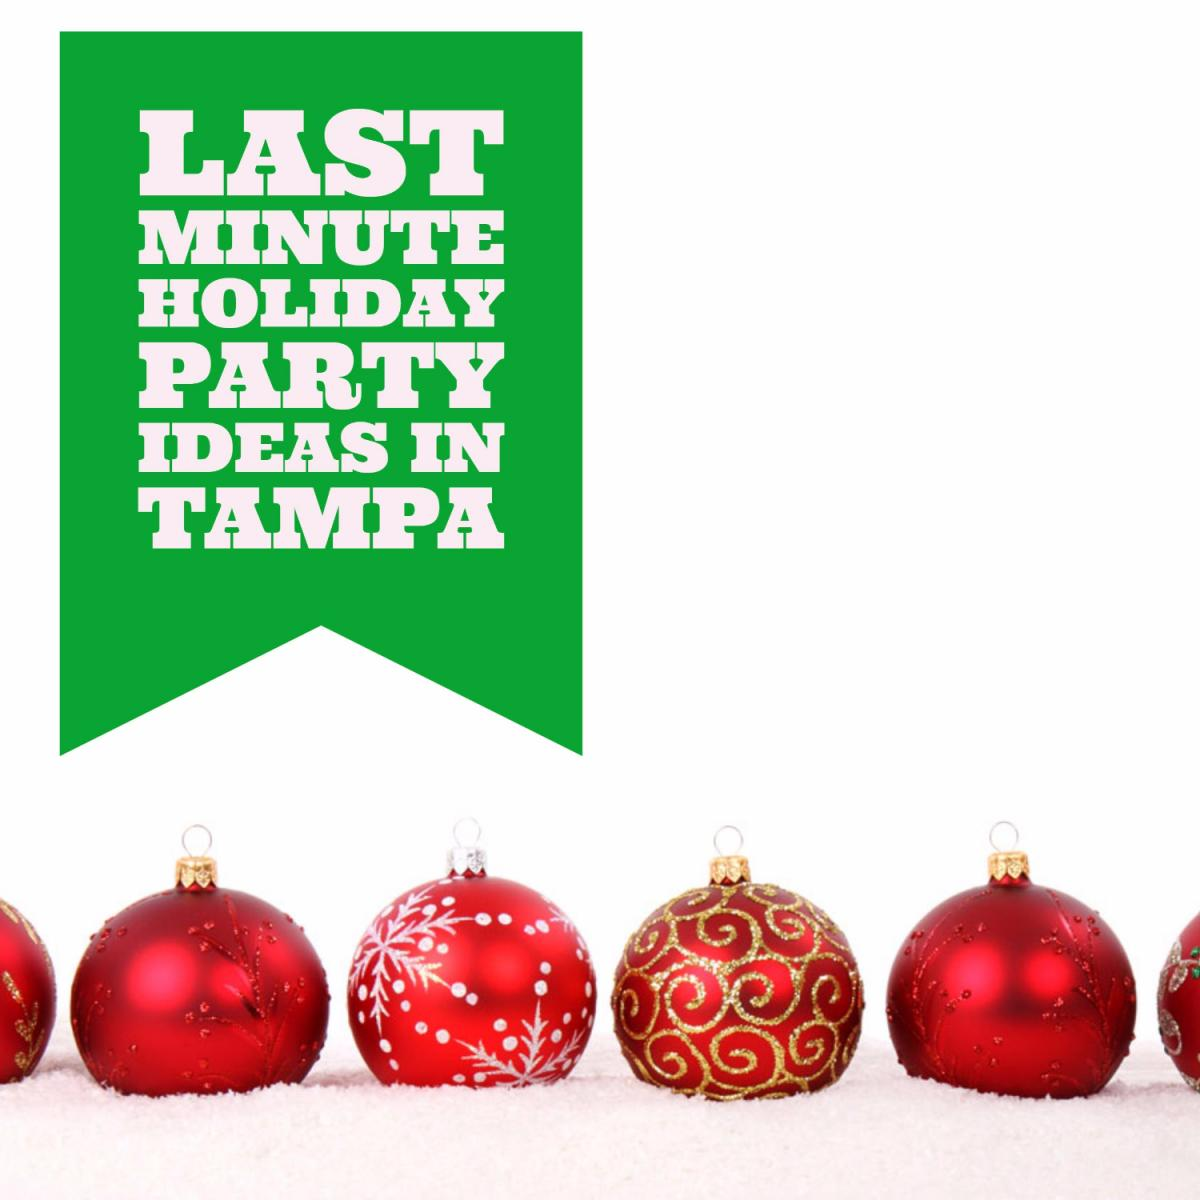 Last minute holiday party ideas in tampa for Week end last minute